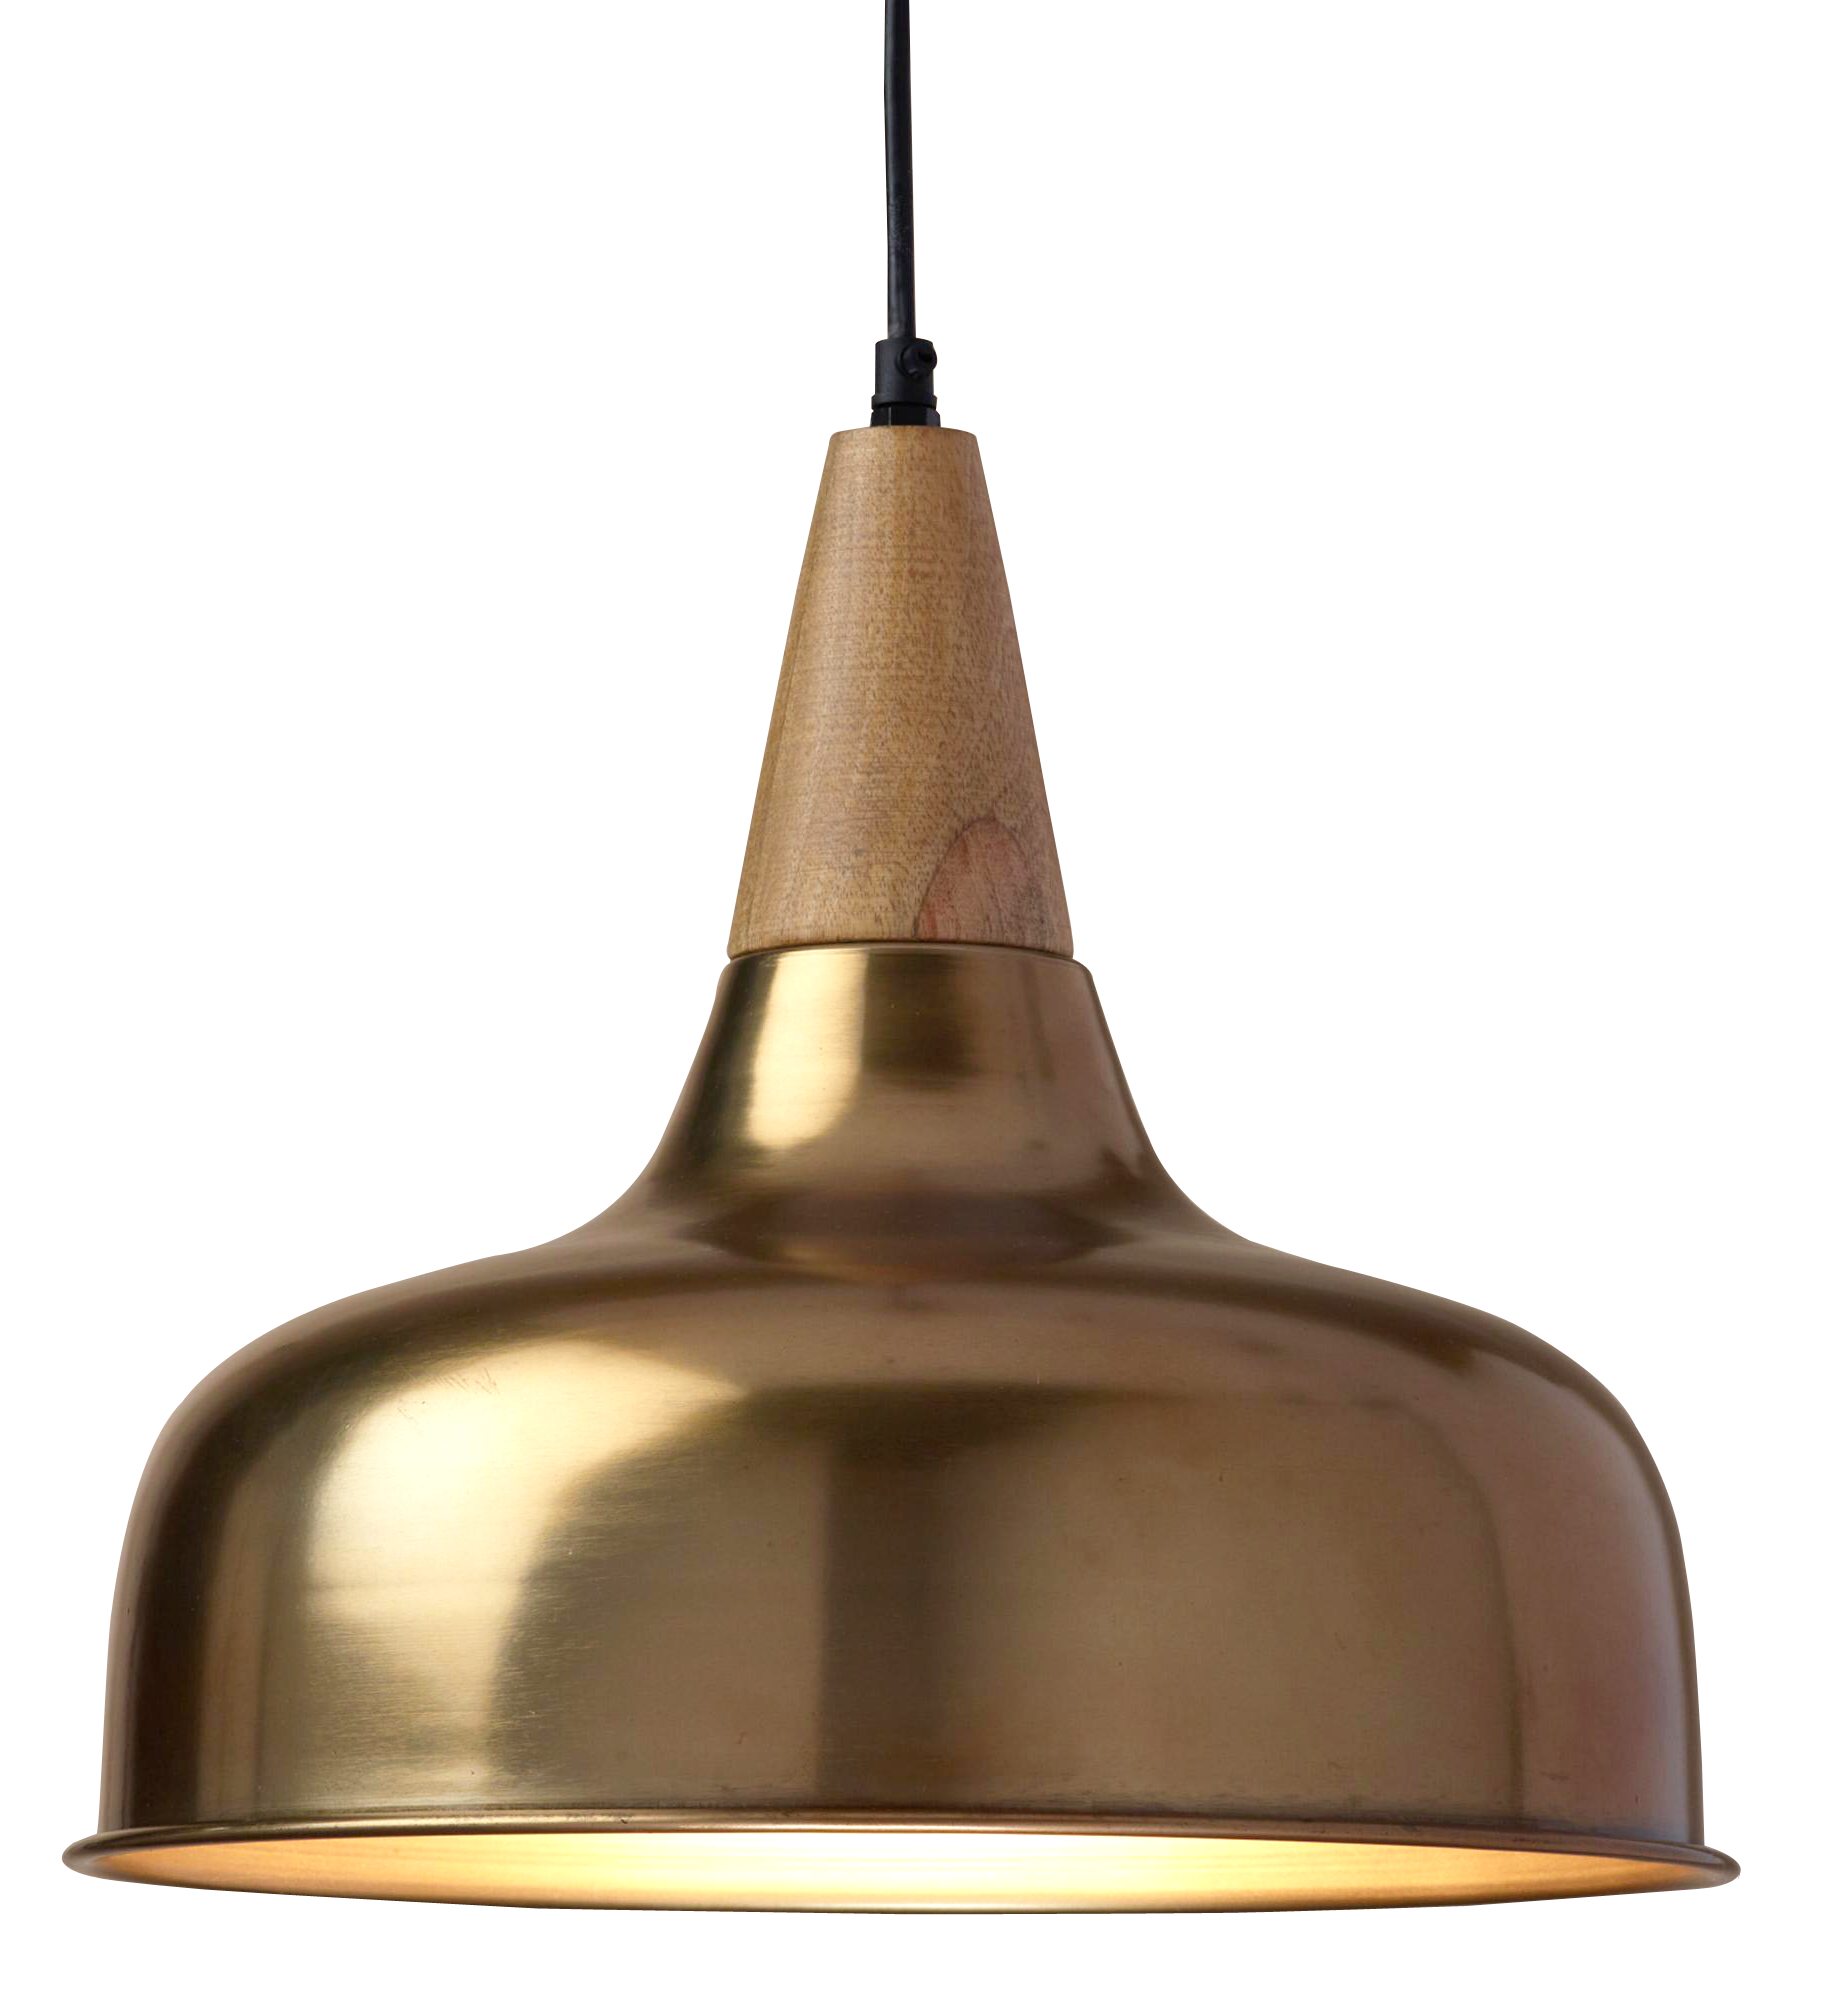 Hanging Lamp PNG Transparent Image.